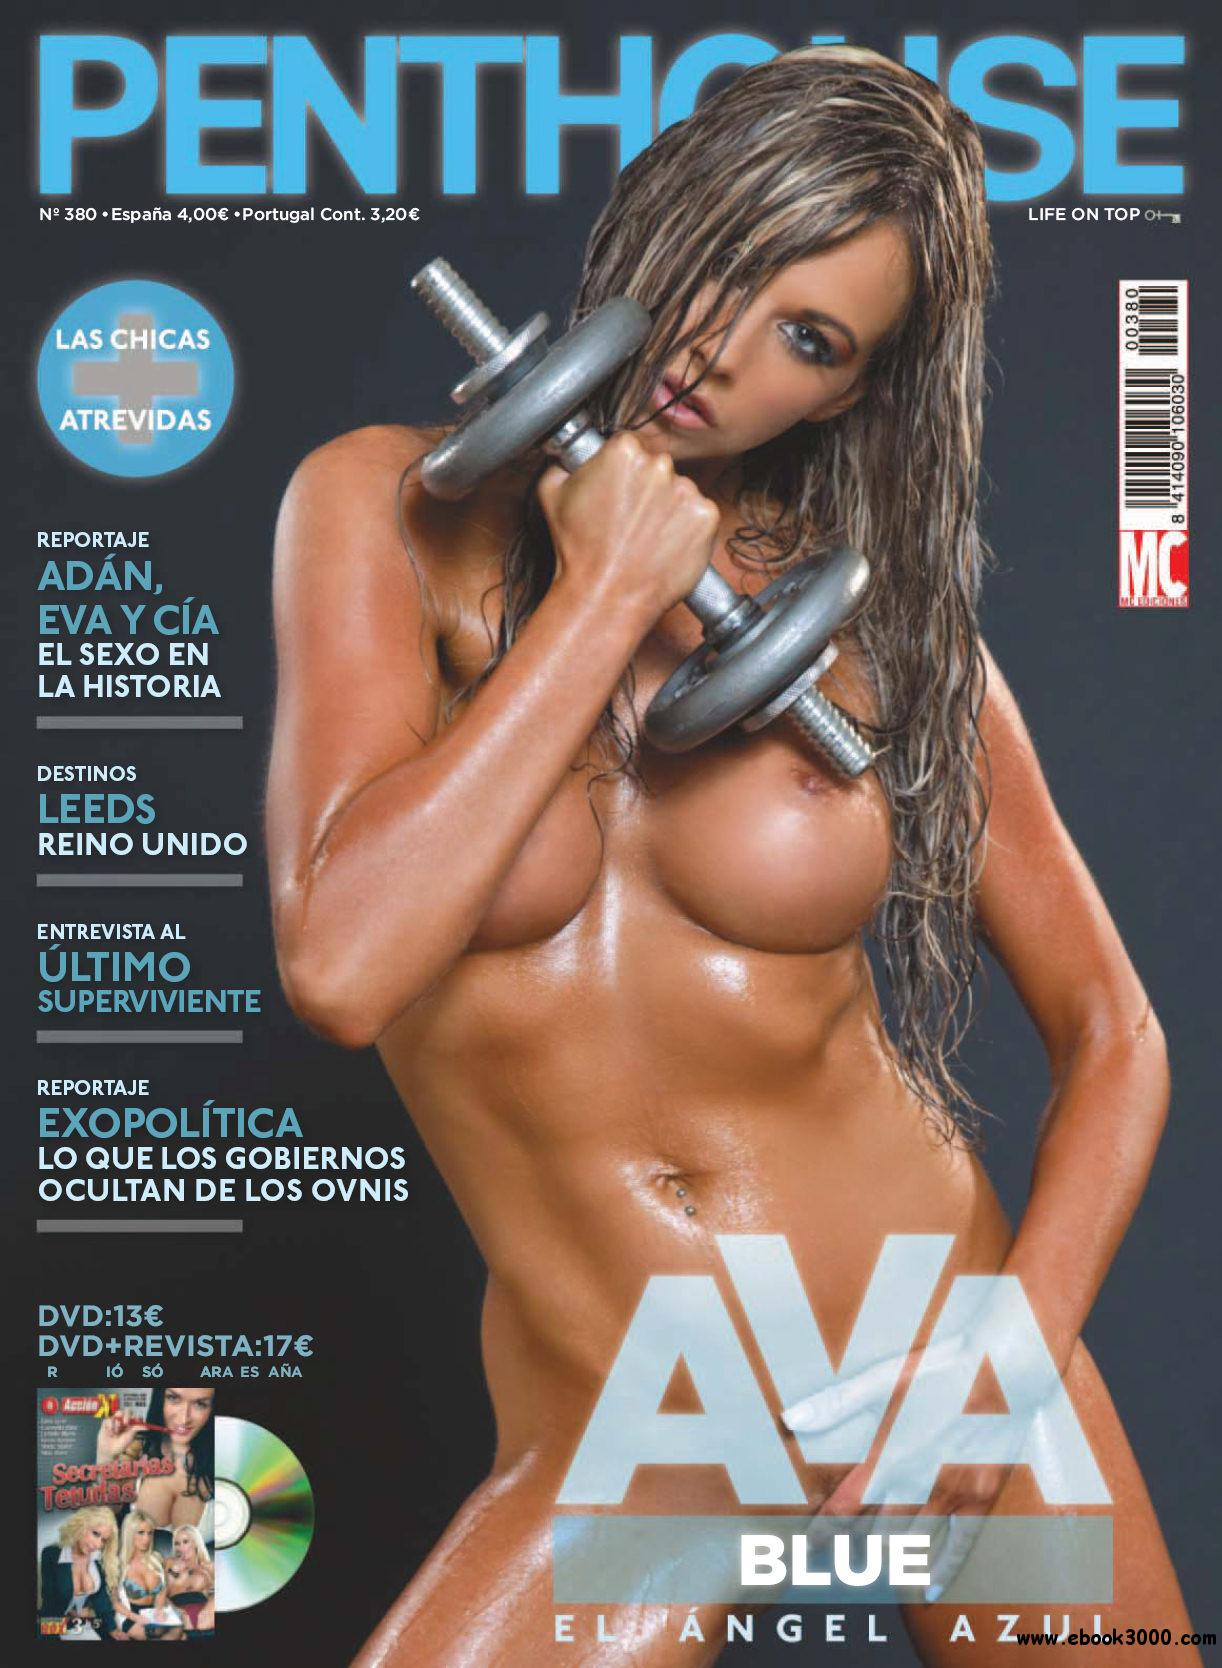 Penthouse Spain - November 2009 free download